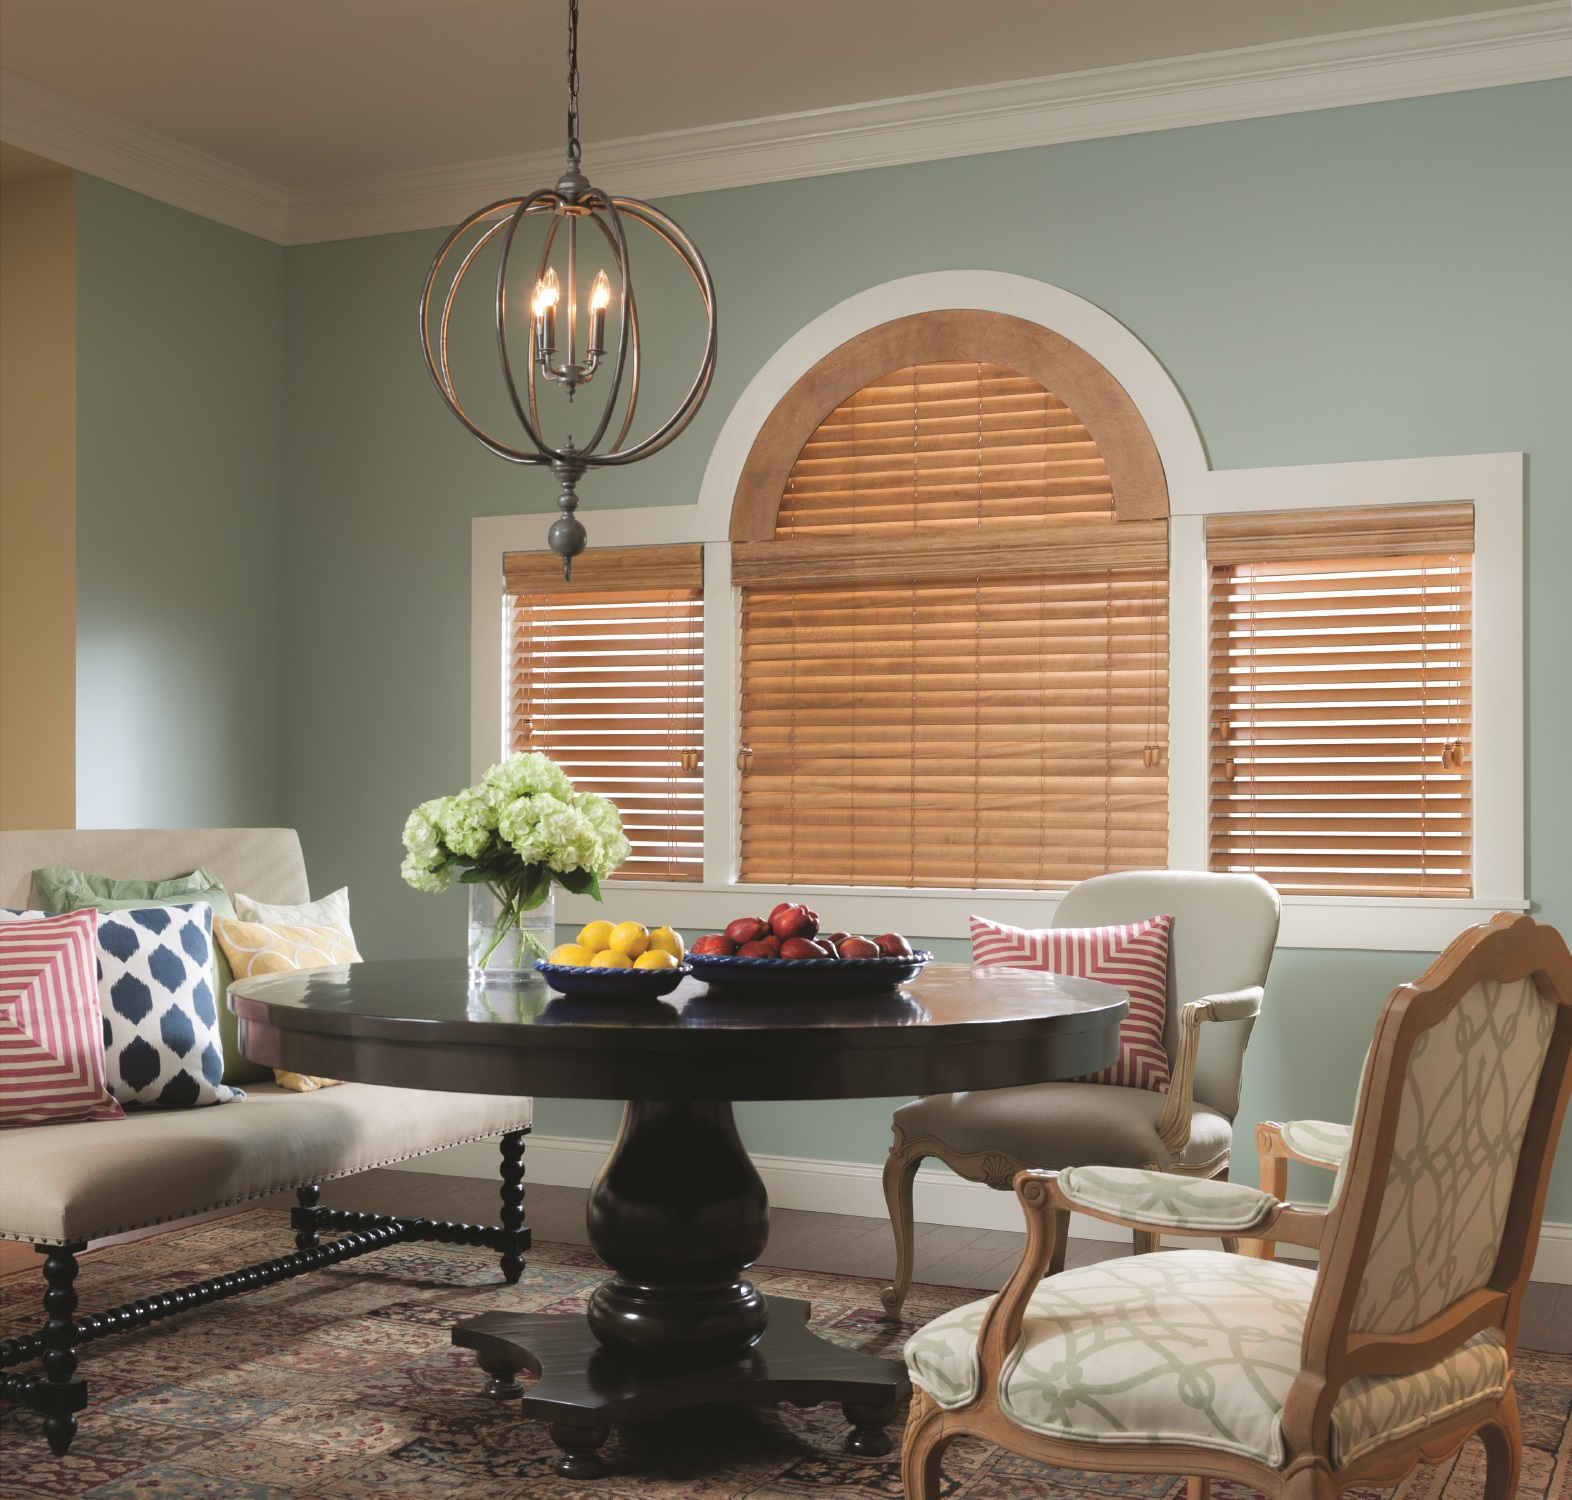 Wood Blinds are an elegant complement to a variety of décor styles, from rustic to ultramodern. They can also take on a wide range of paint and stain colors, offering customization options to enhance one room or an entire home.